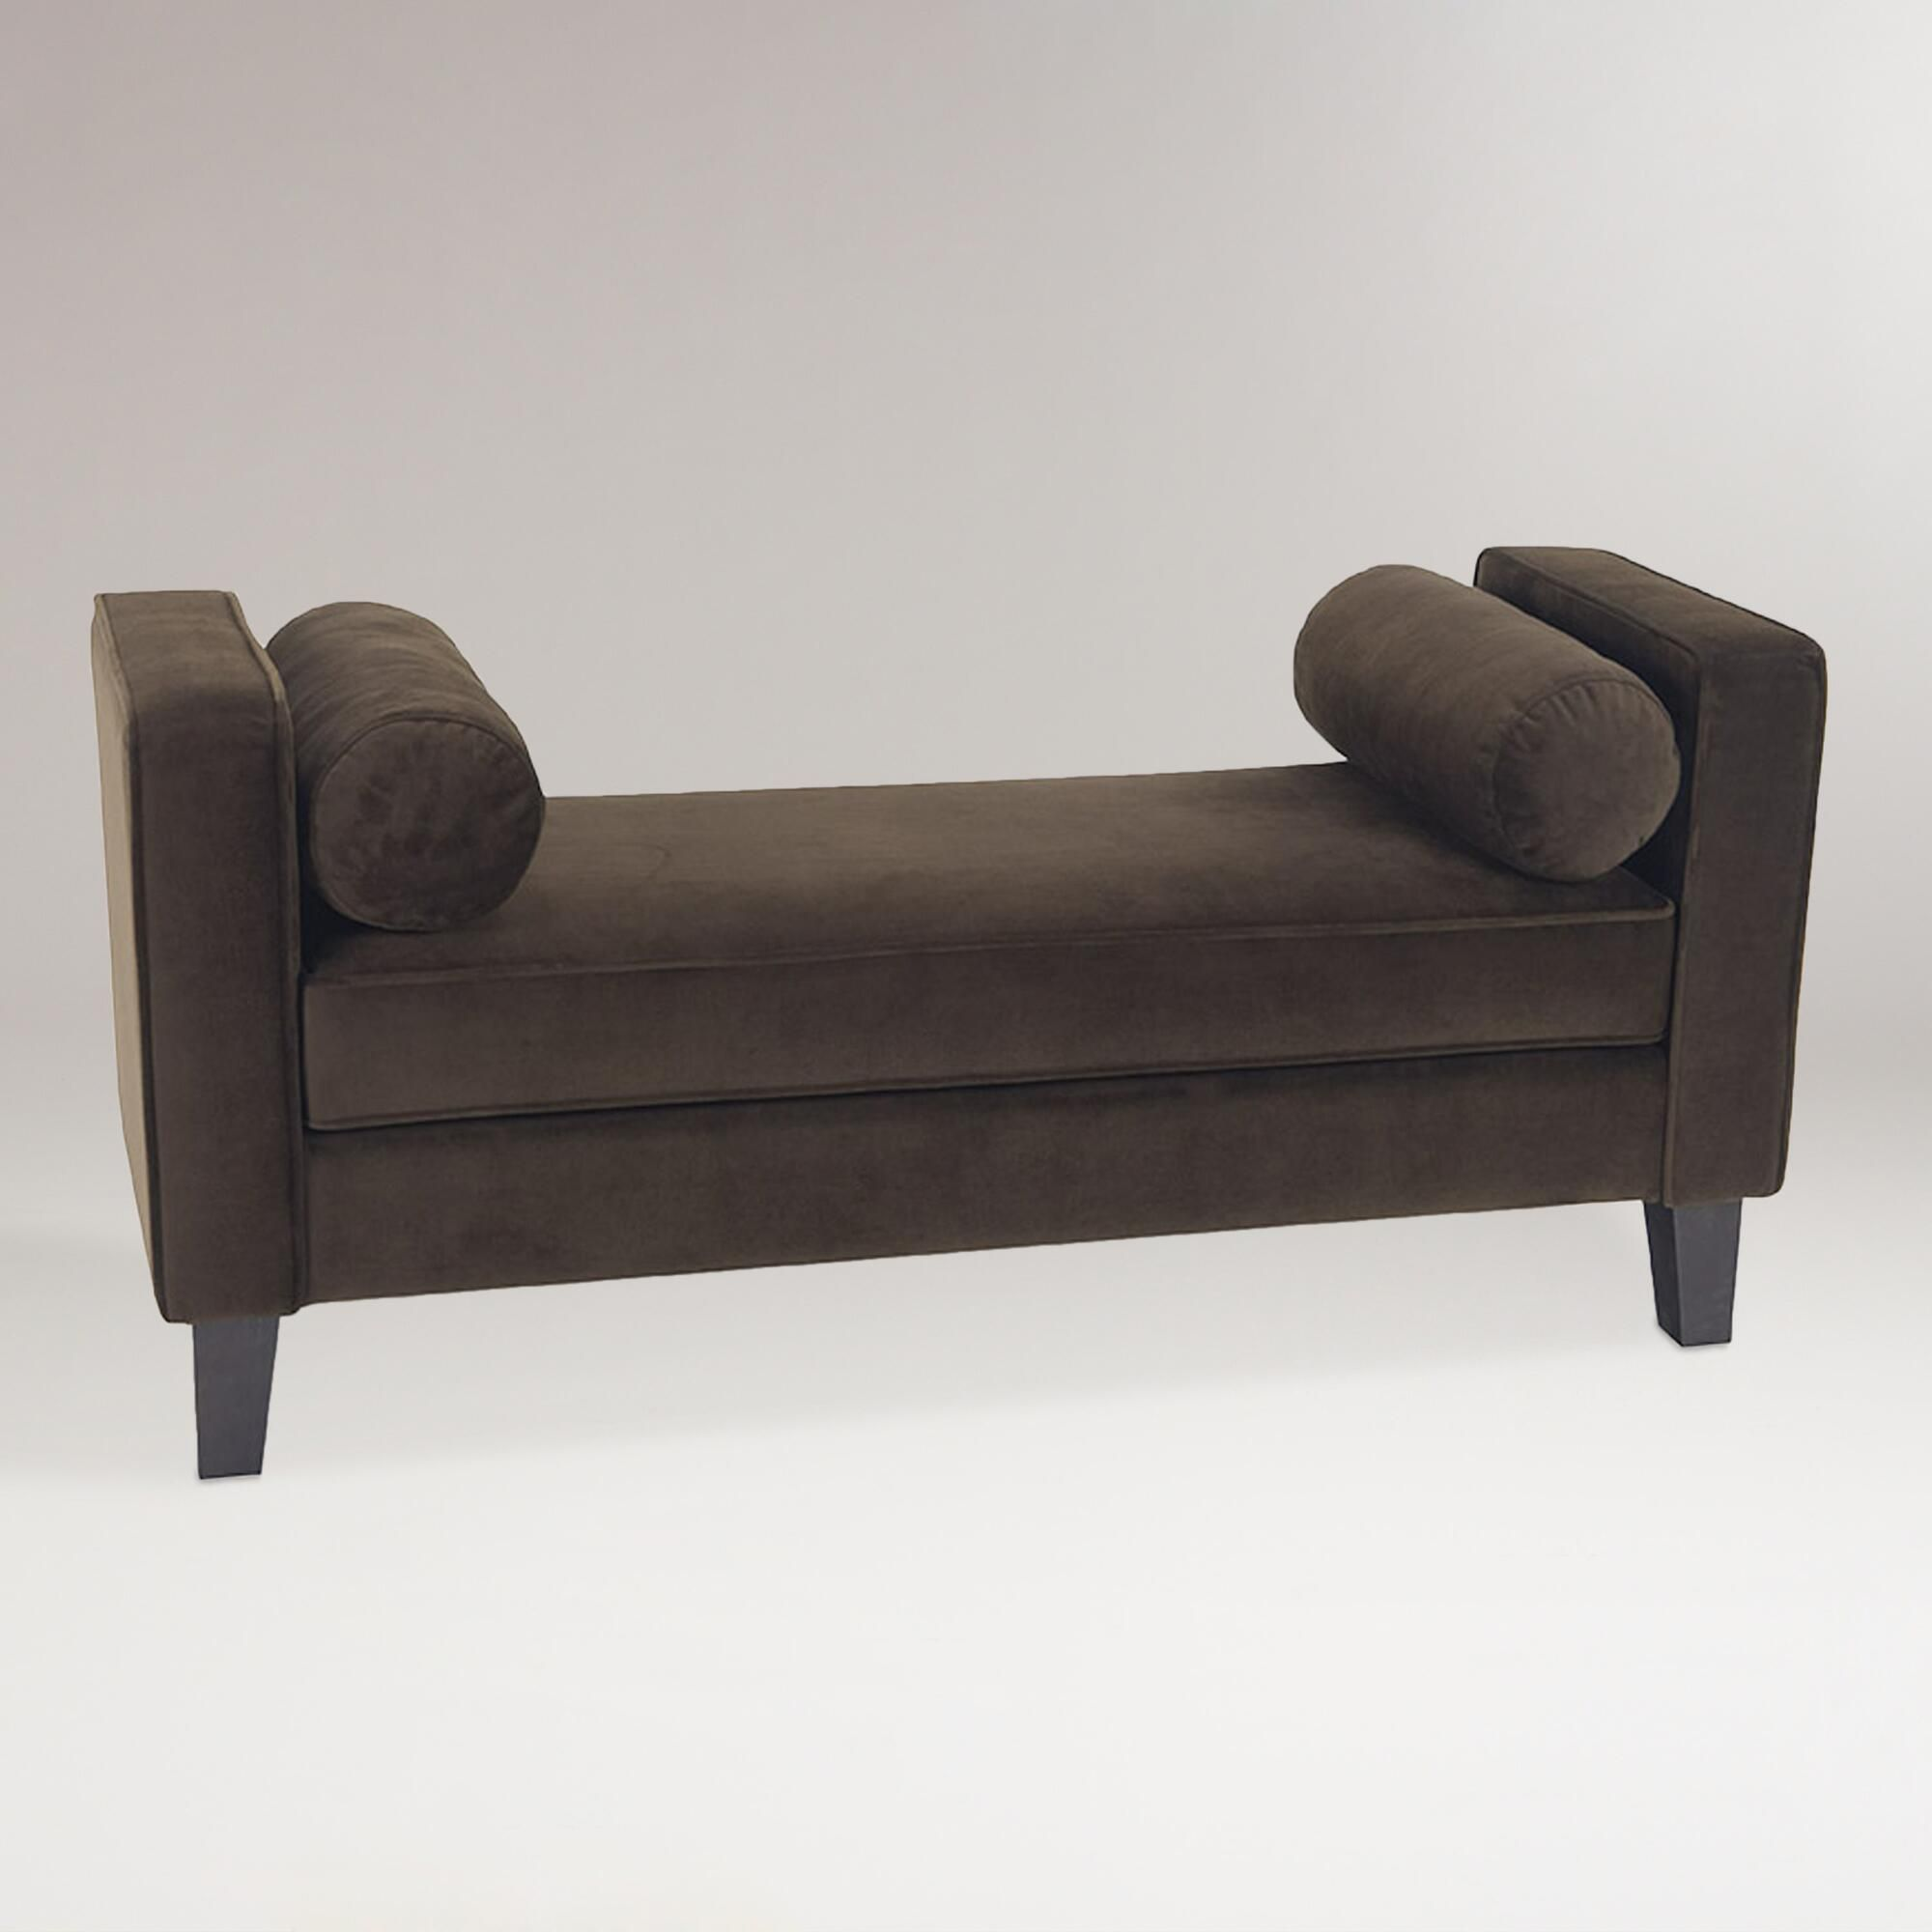 Our Expertly Crafted Chocolate Velvet Taylor Bench With Bolsters Is A Thrilling Alternative To The Common Sofa Covered In Rich Plush